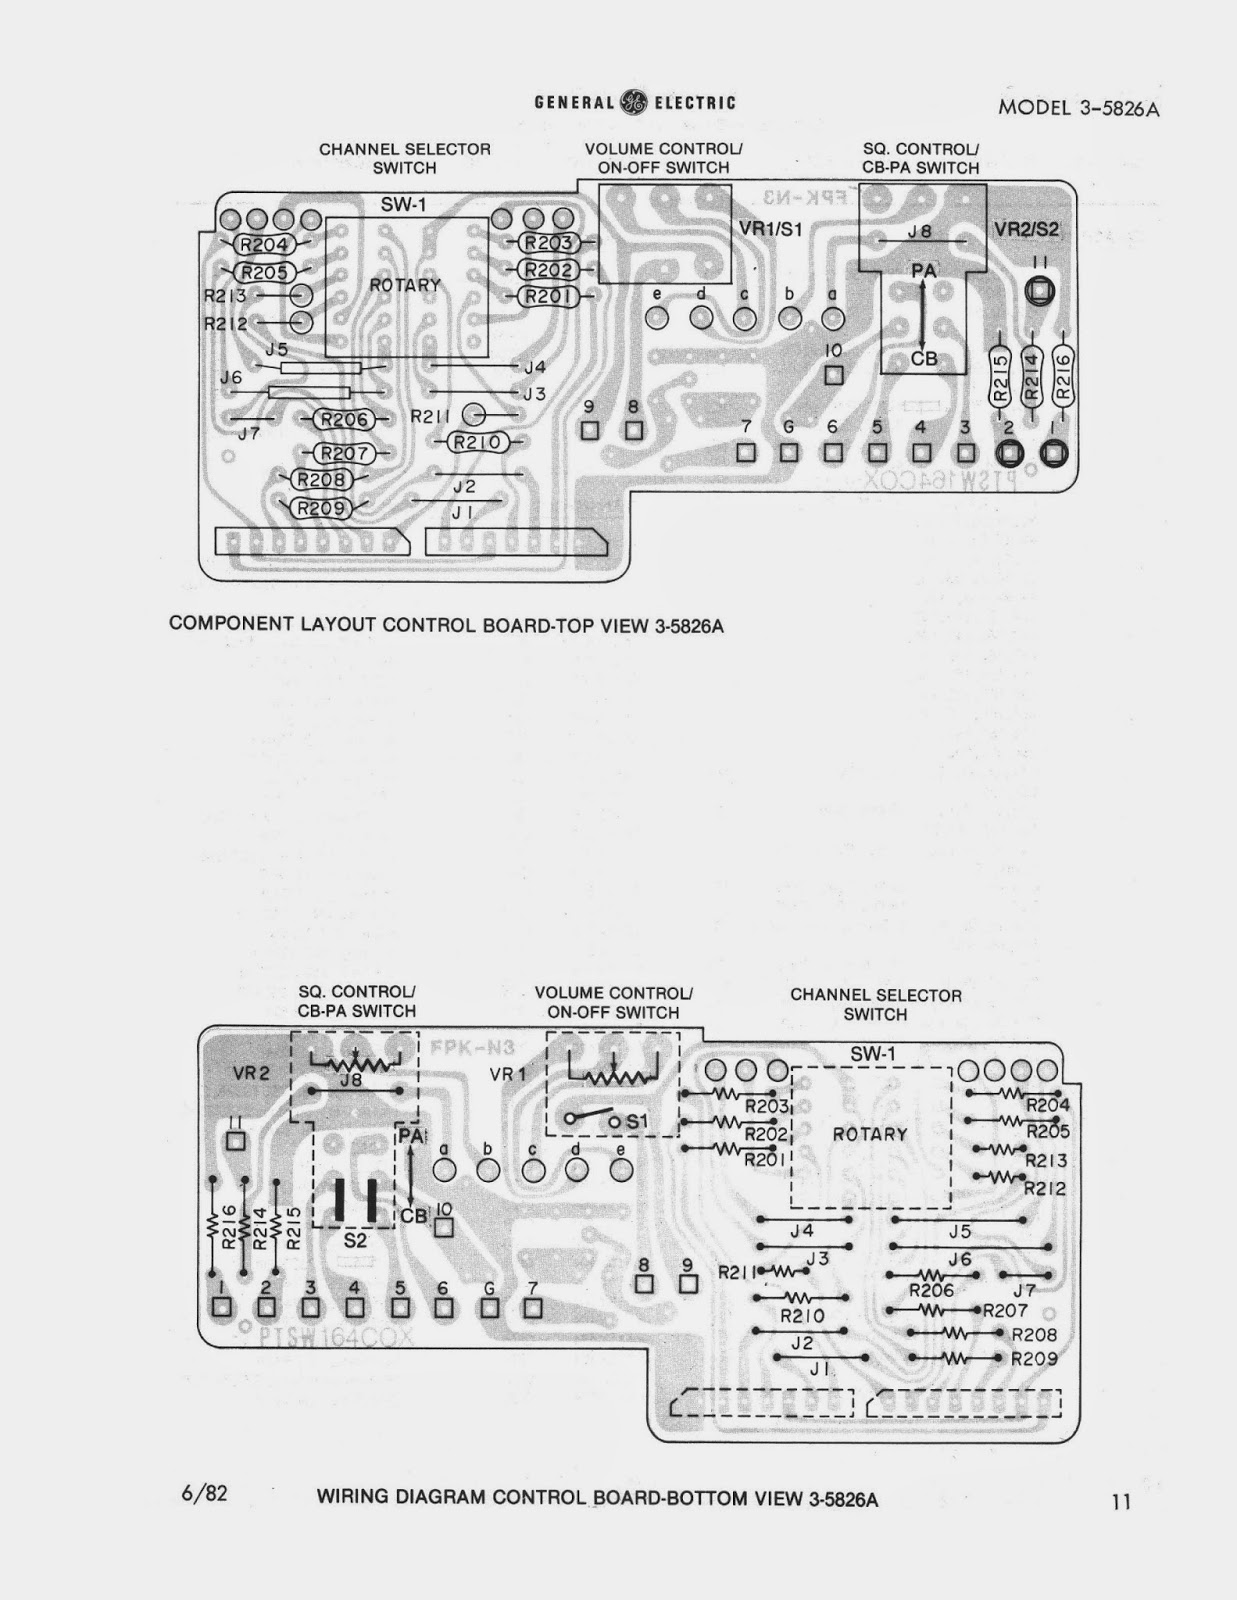 91NR712: General Electric GE 3-5826A Service Manual